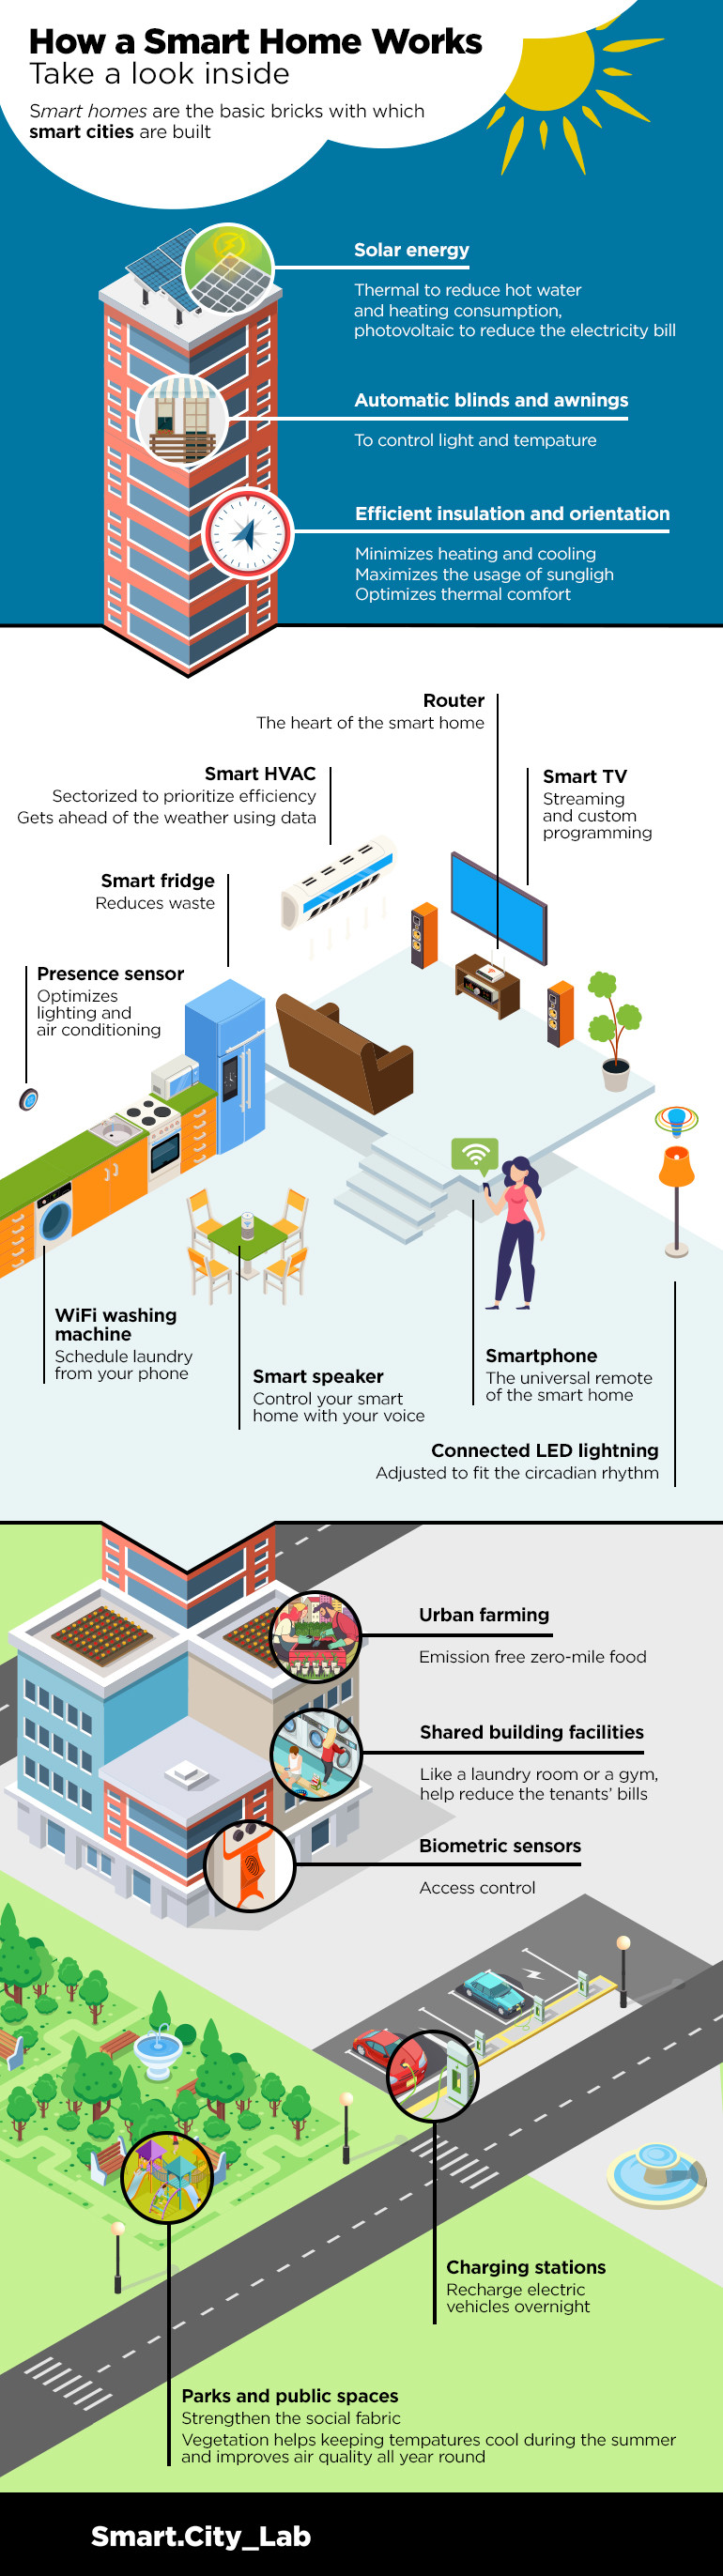 how-a-smart-home-works-infographic2